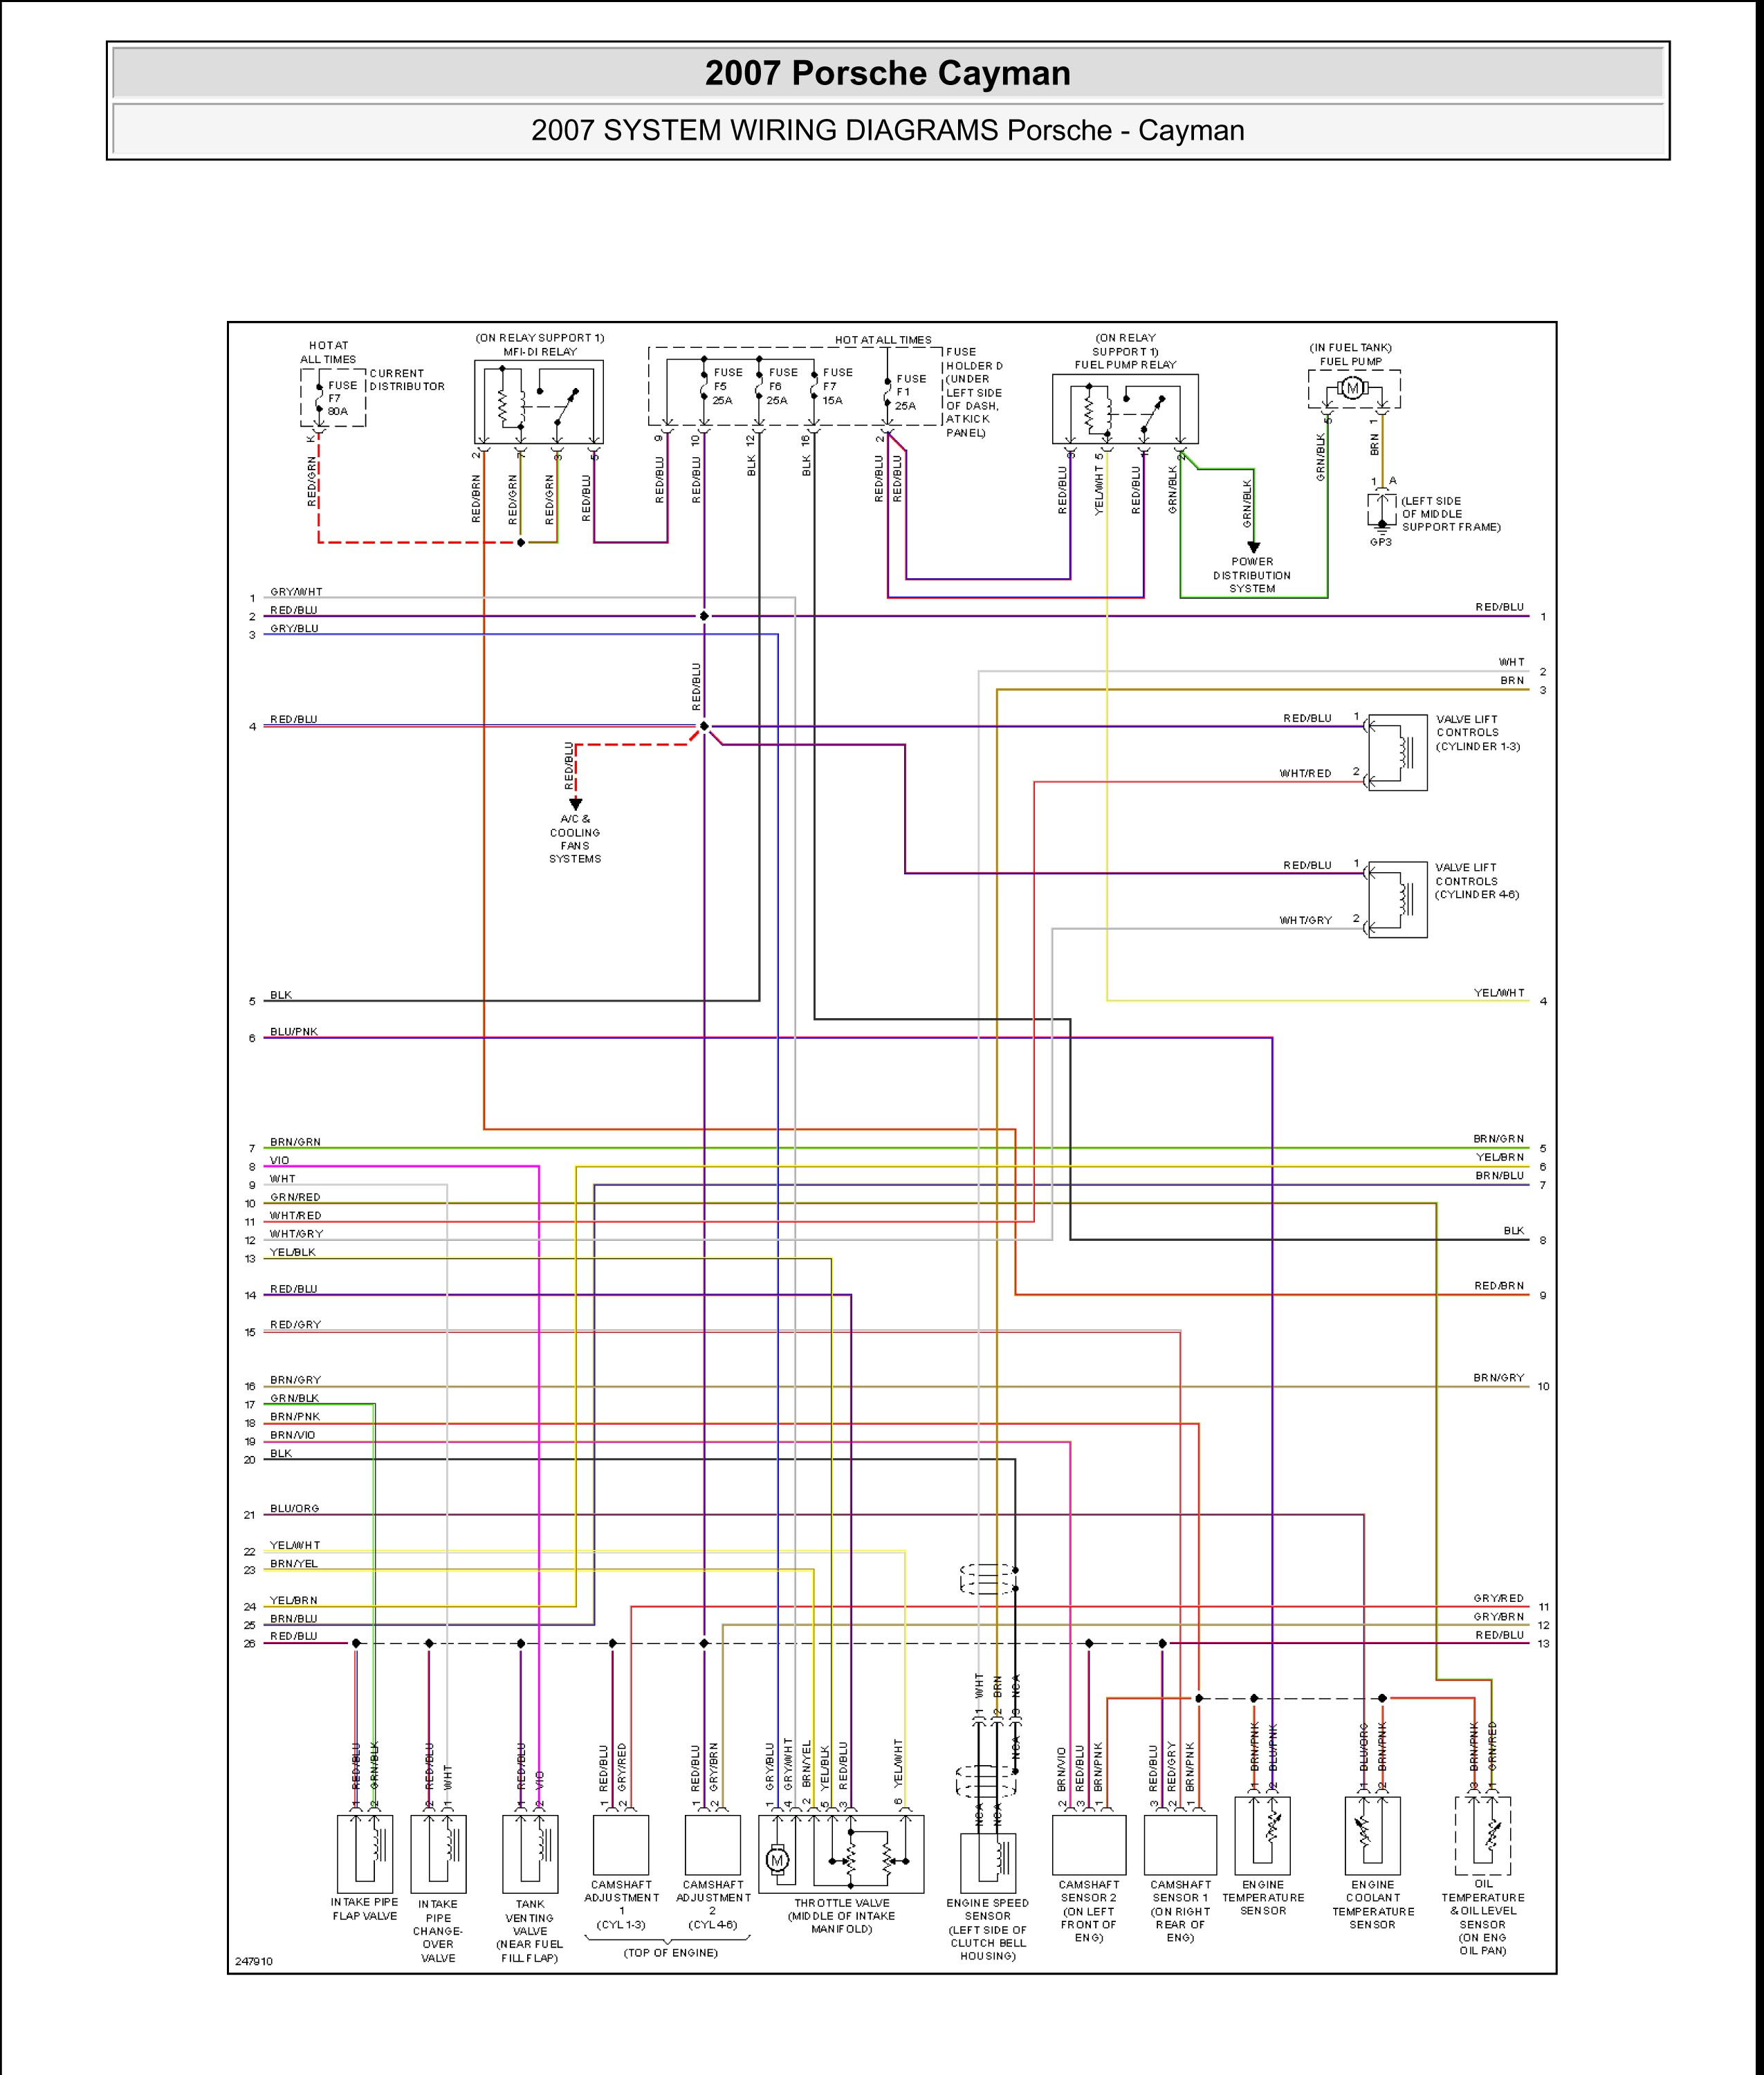 Vario wiring diagram battery diagrams wiring diagram odicis 11 engine 911 engine swap on vario wiring diagram asfbconference2016 Images